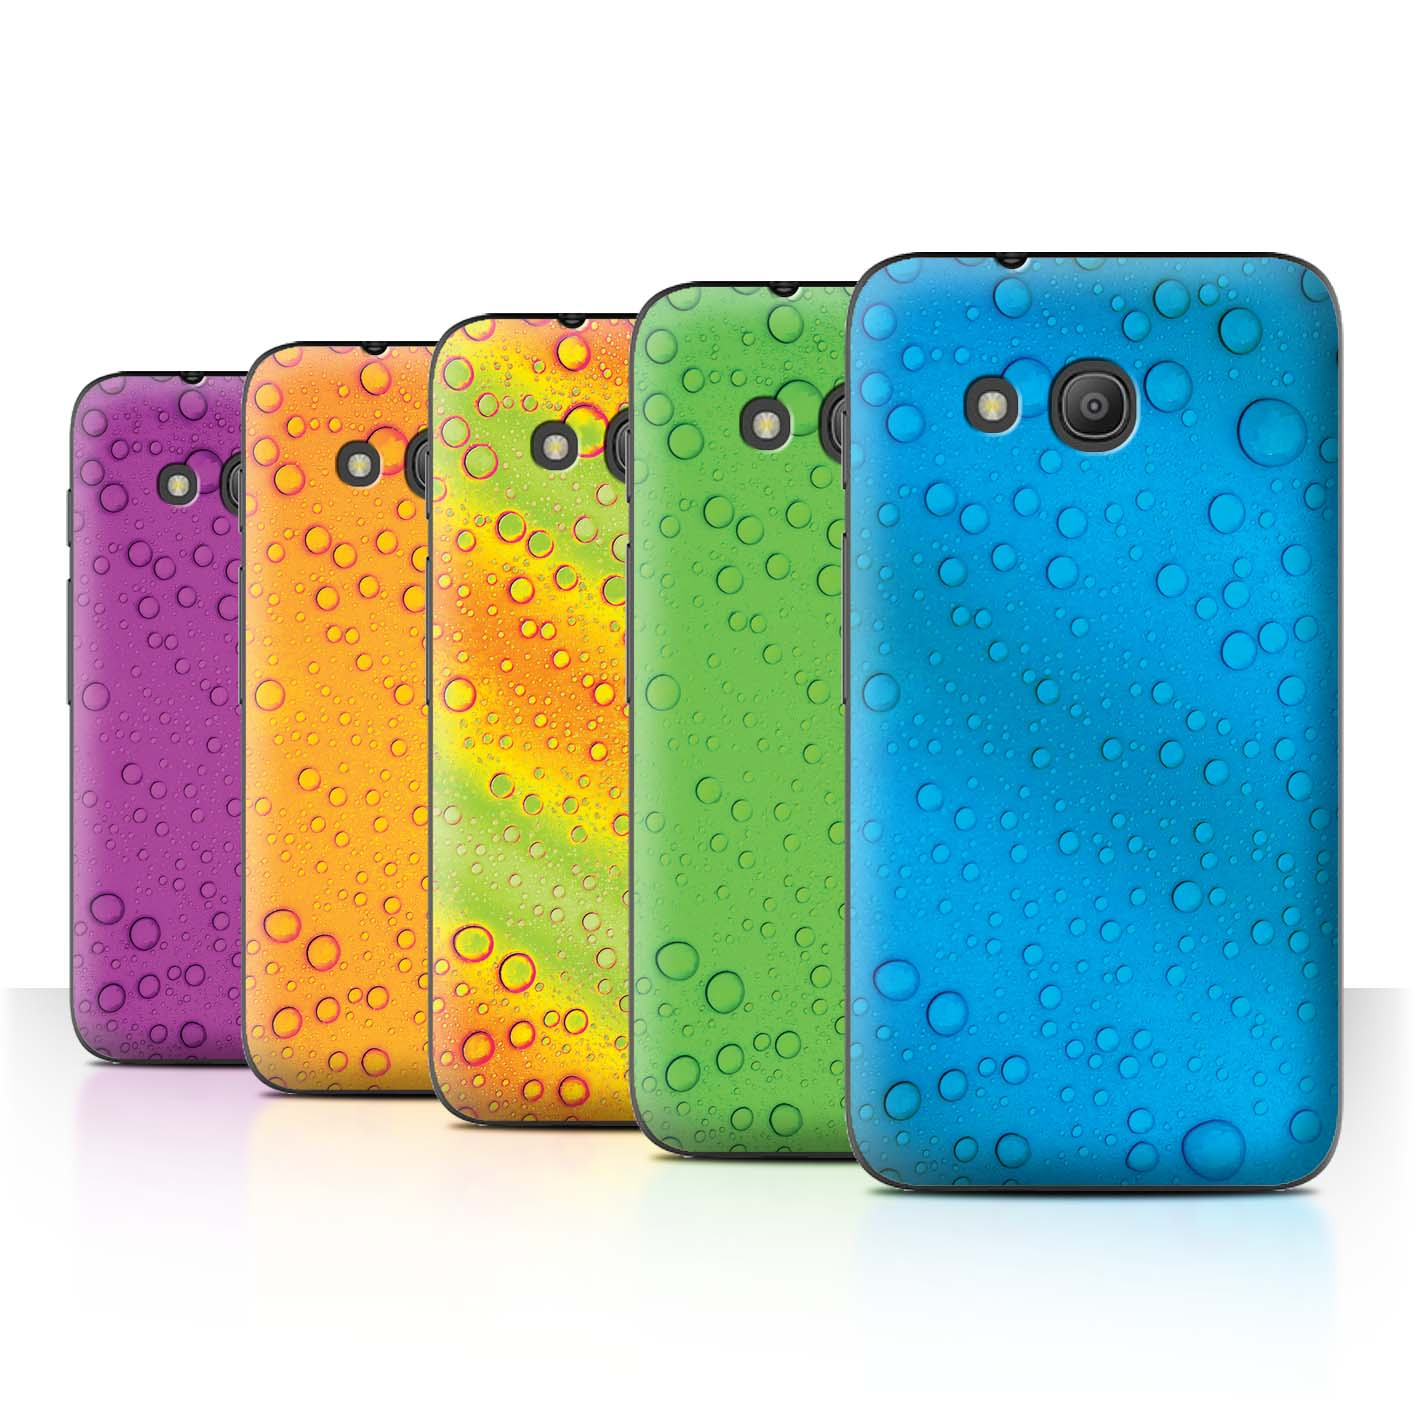 STUFF4-Back-Case-Cover-Skin-for-Alcatel-Pixi-4-4-034-Water-Droplets